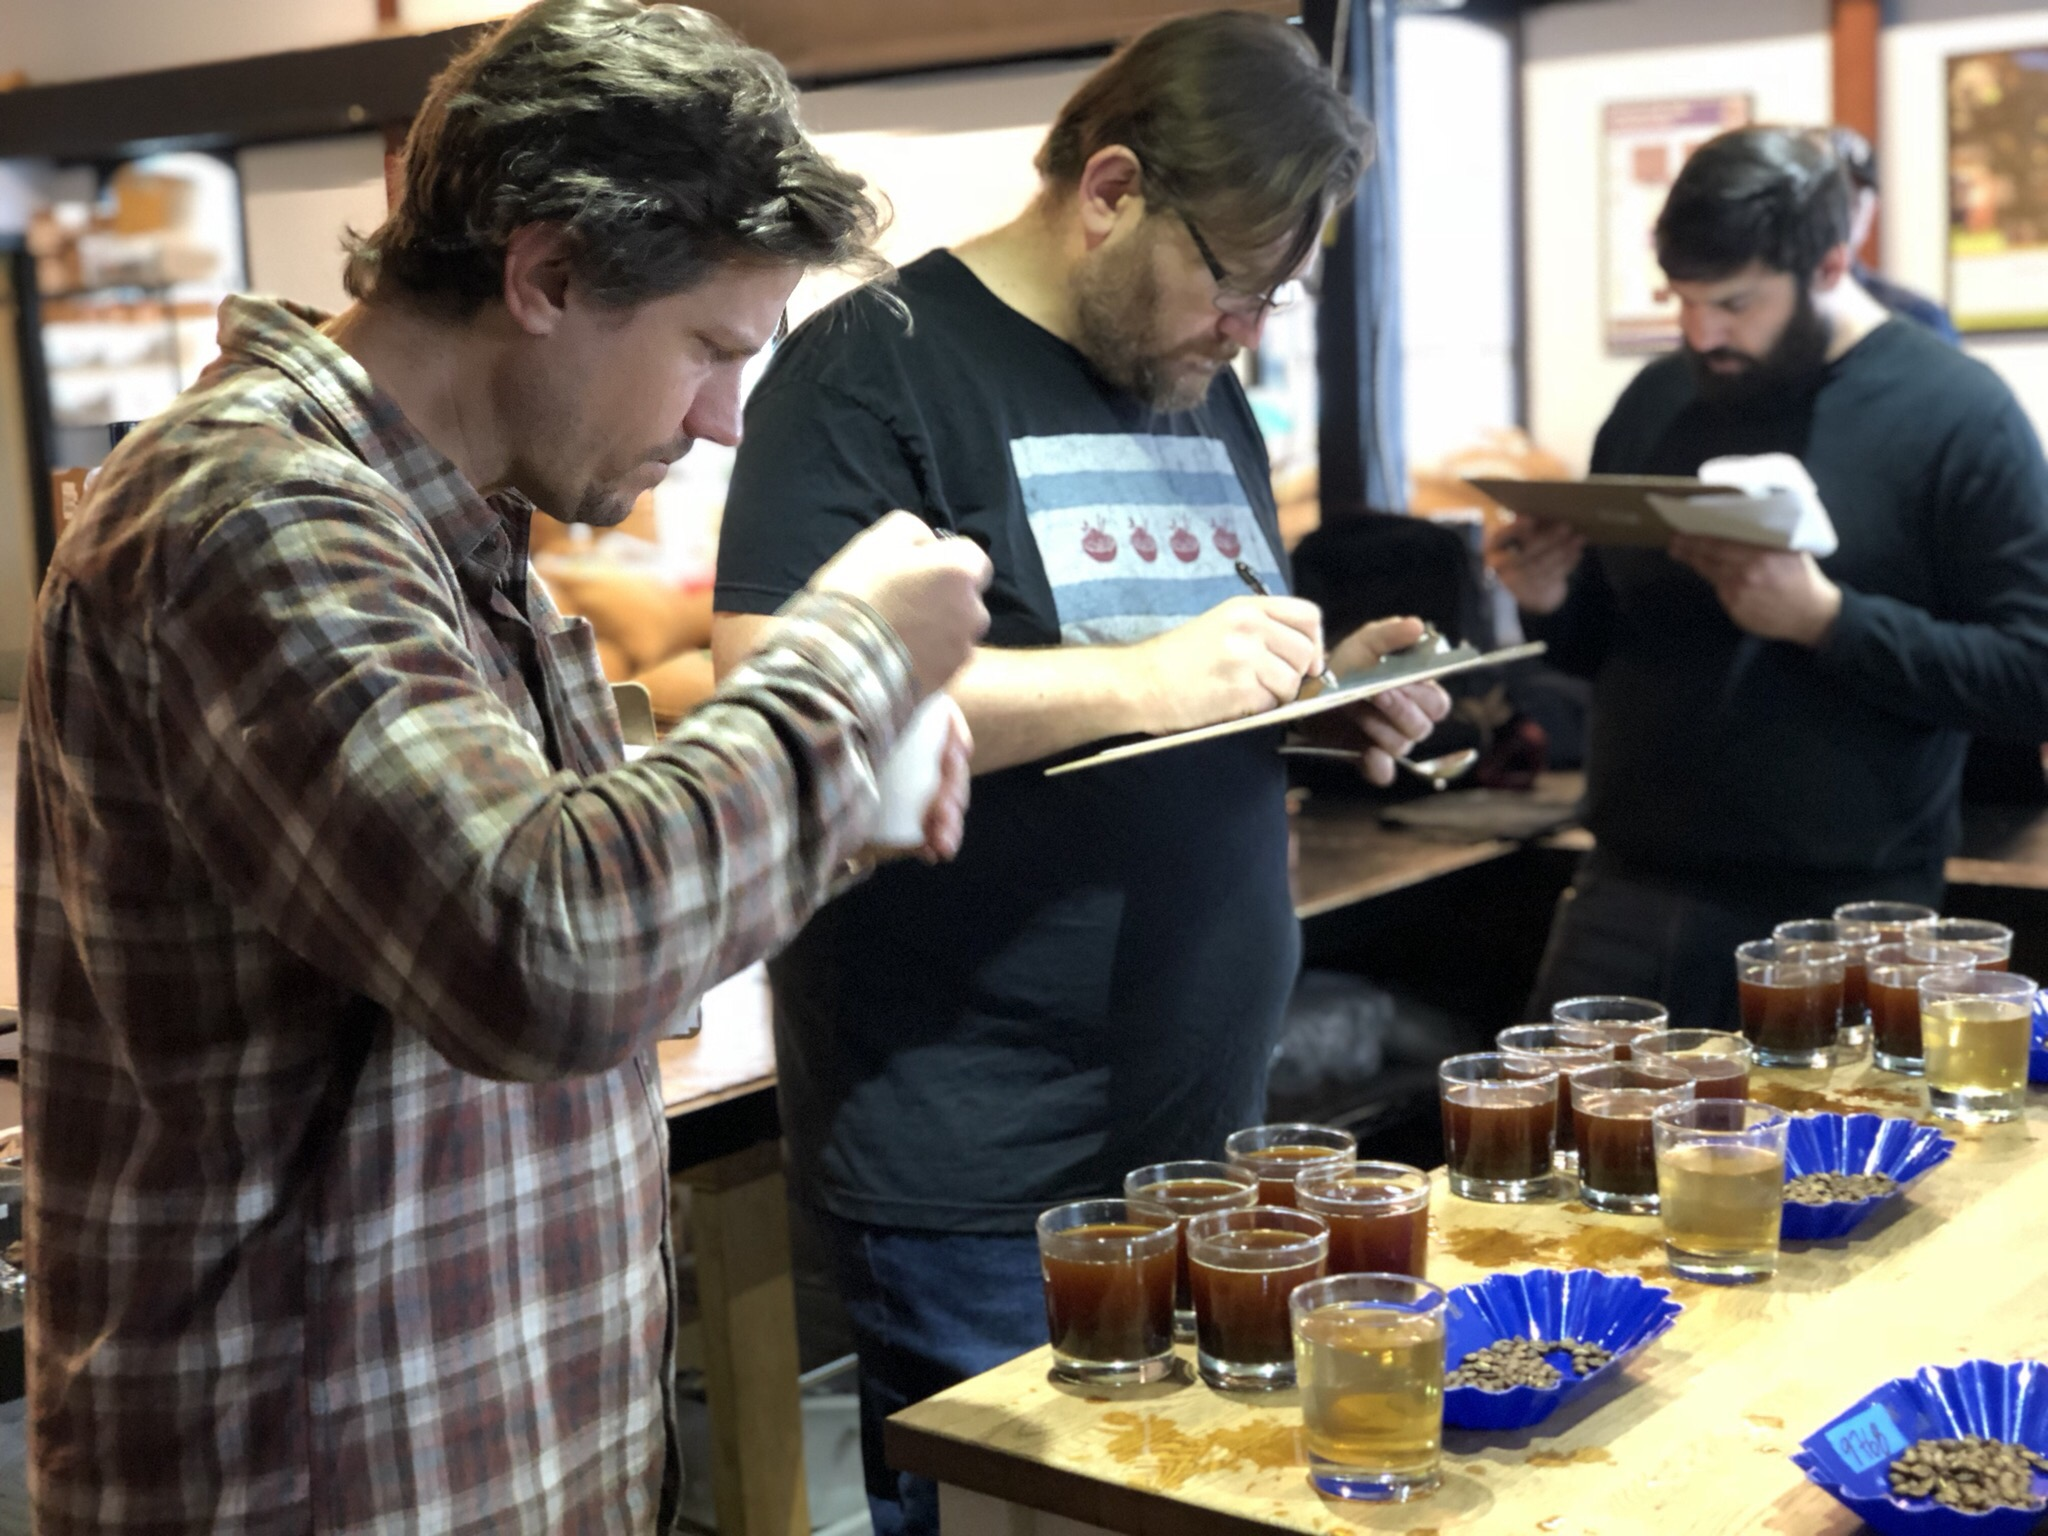 The Little City team cupping Costa Rica samples from Ian's sourcing trip, to determine which freshly harvested (seasonal) coffee will replace the Peruvian coffee in some of our blends.